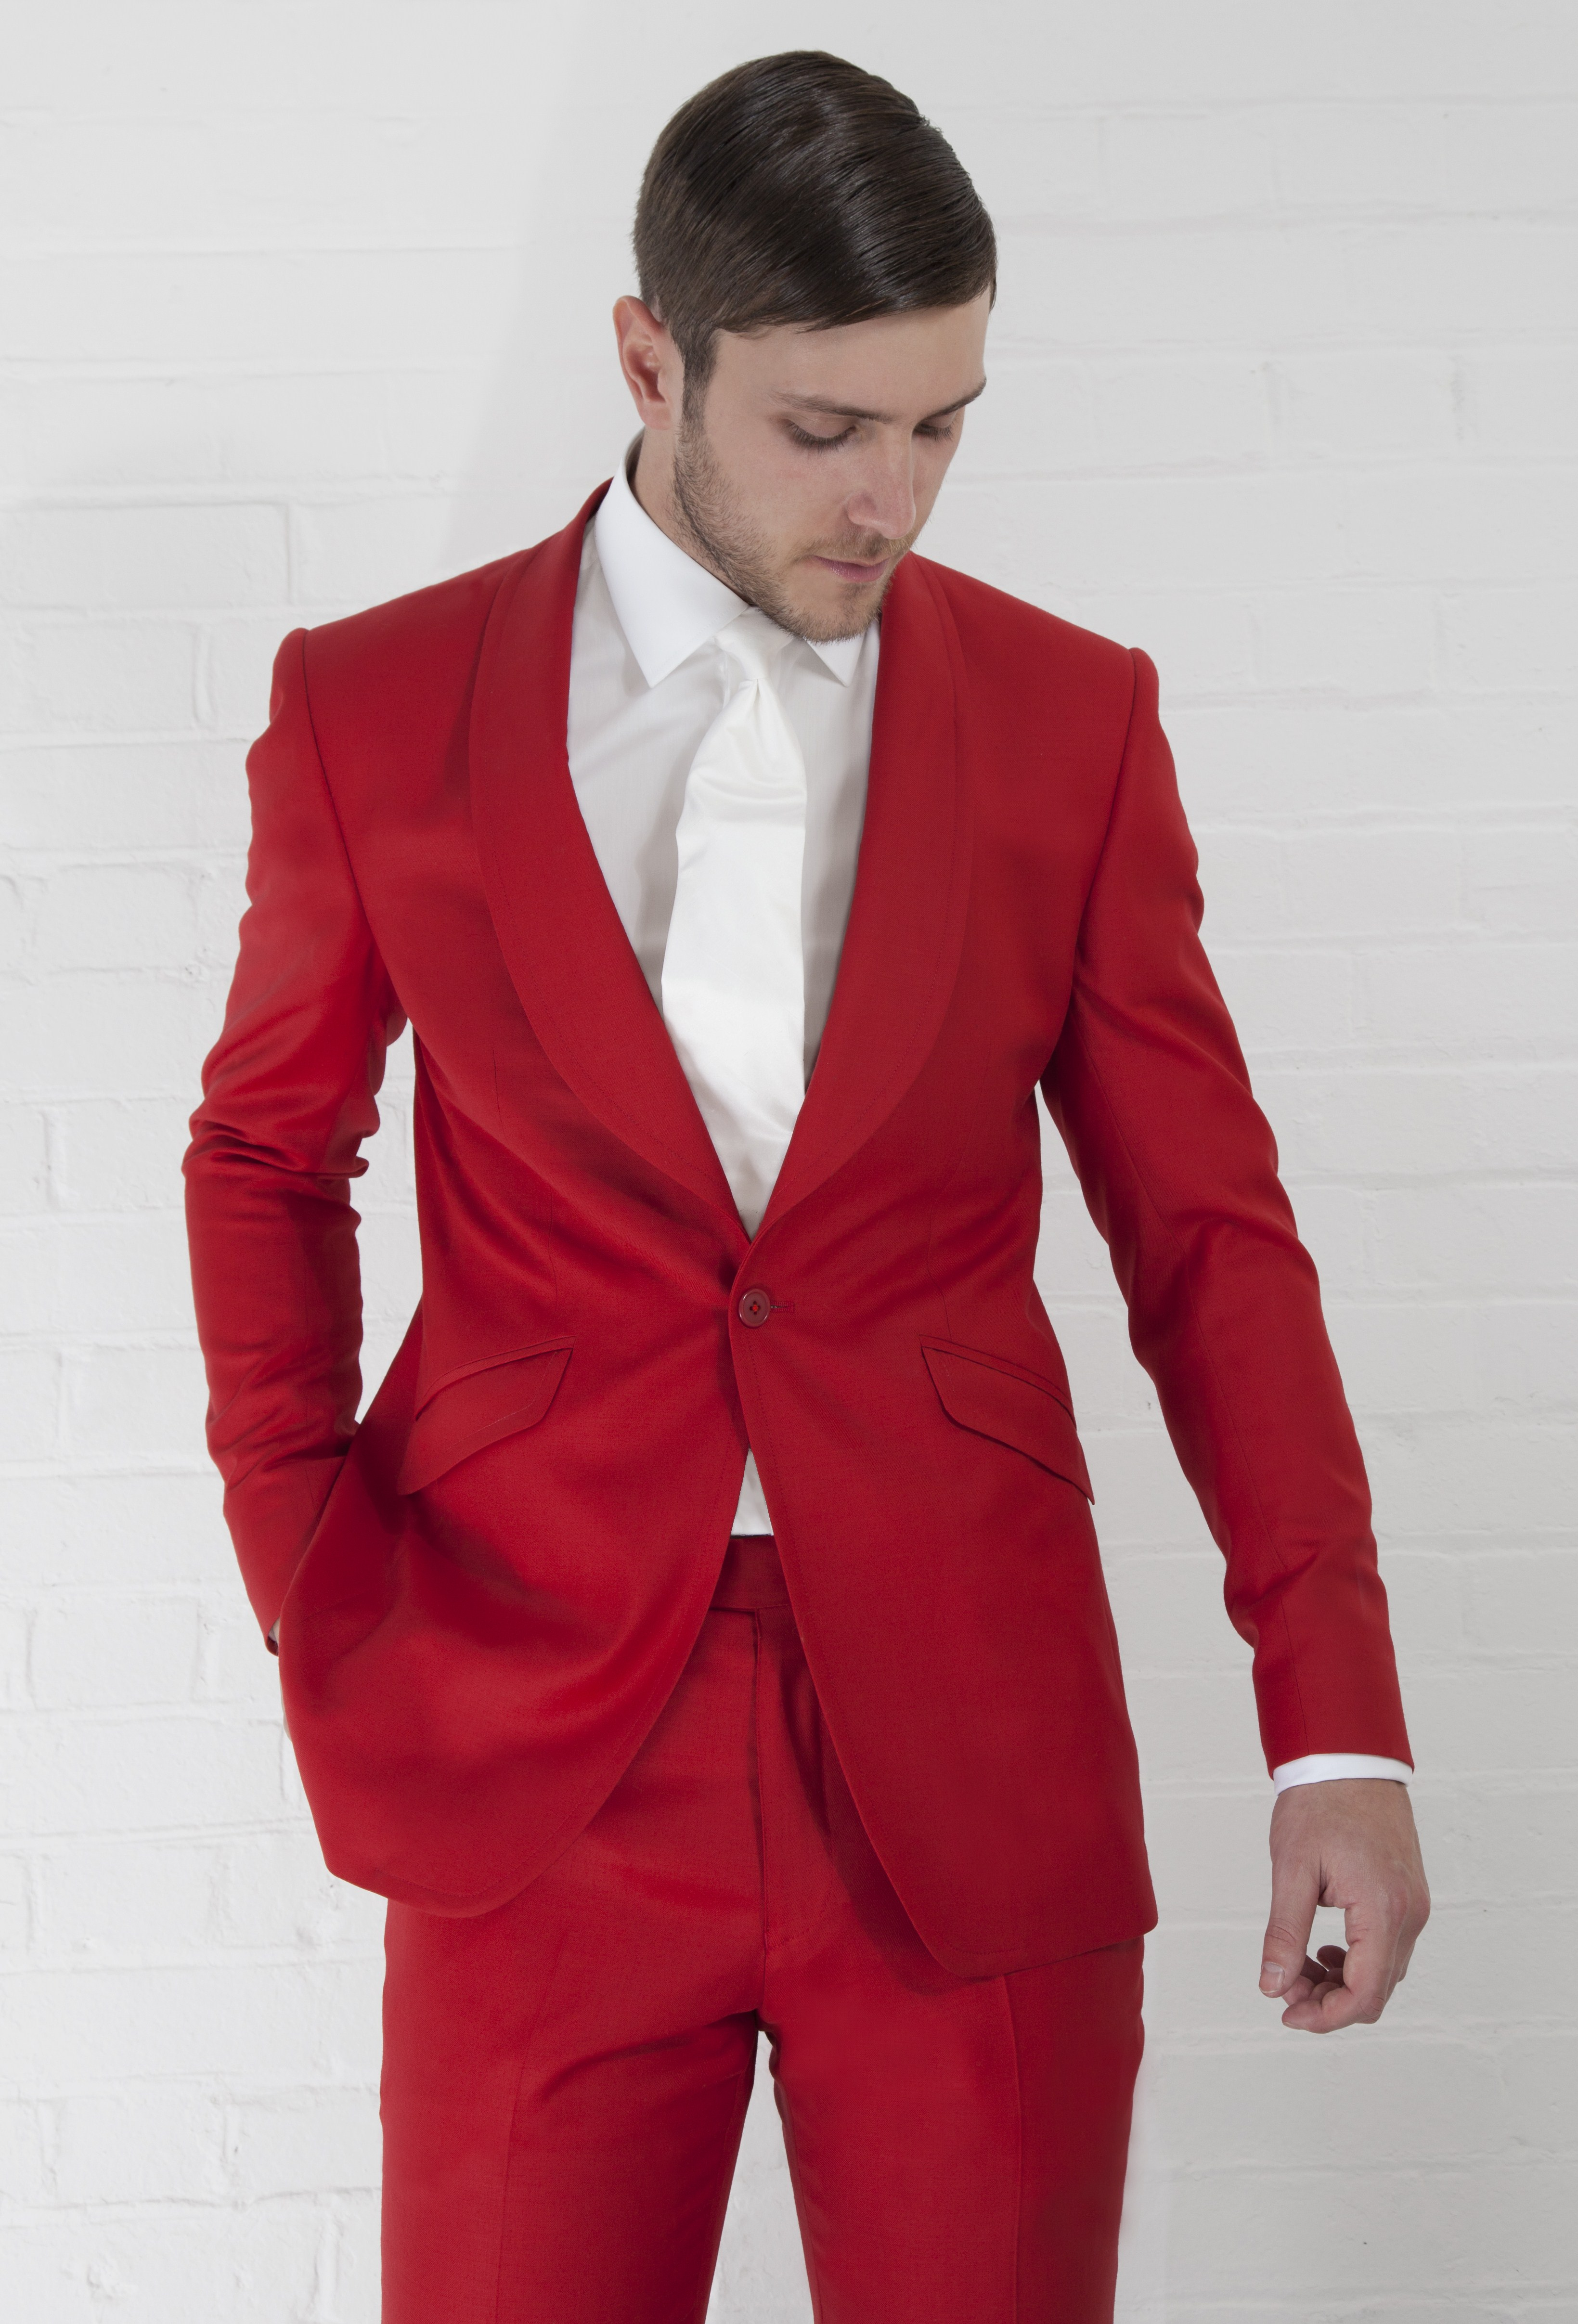 Style Savvy/Big Day Style - Made to Measure Suits by Adam Waite